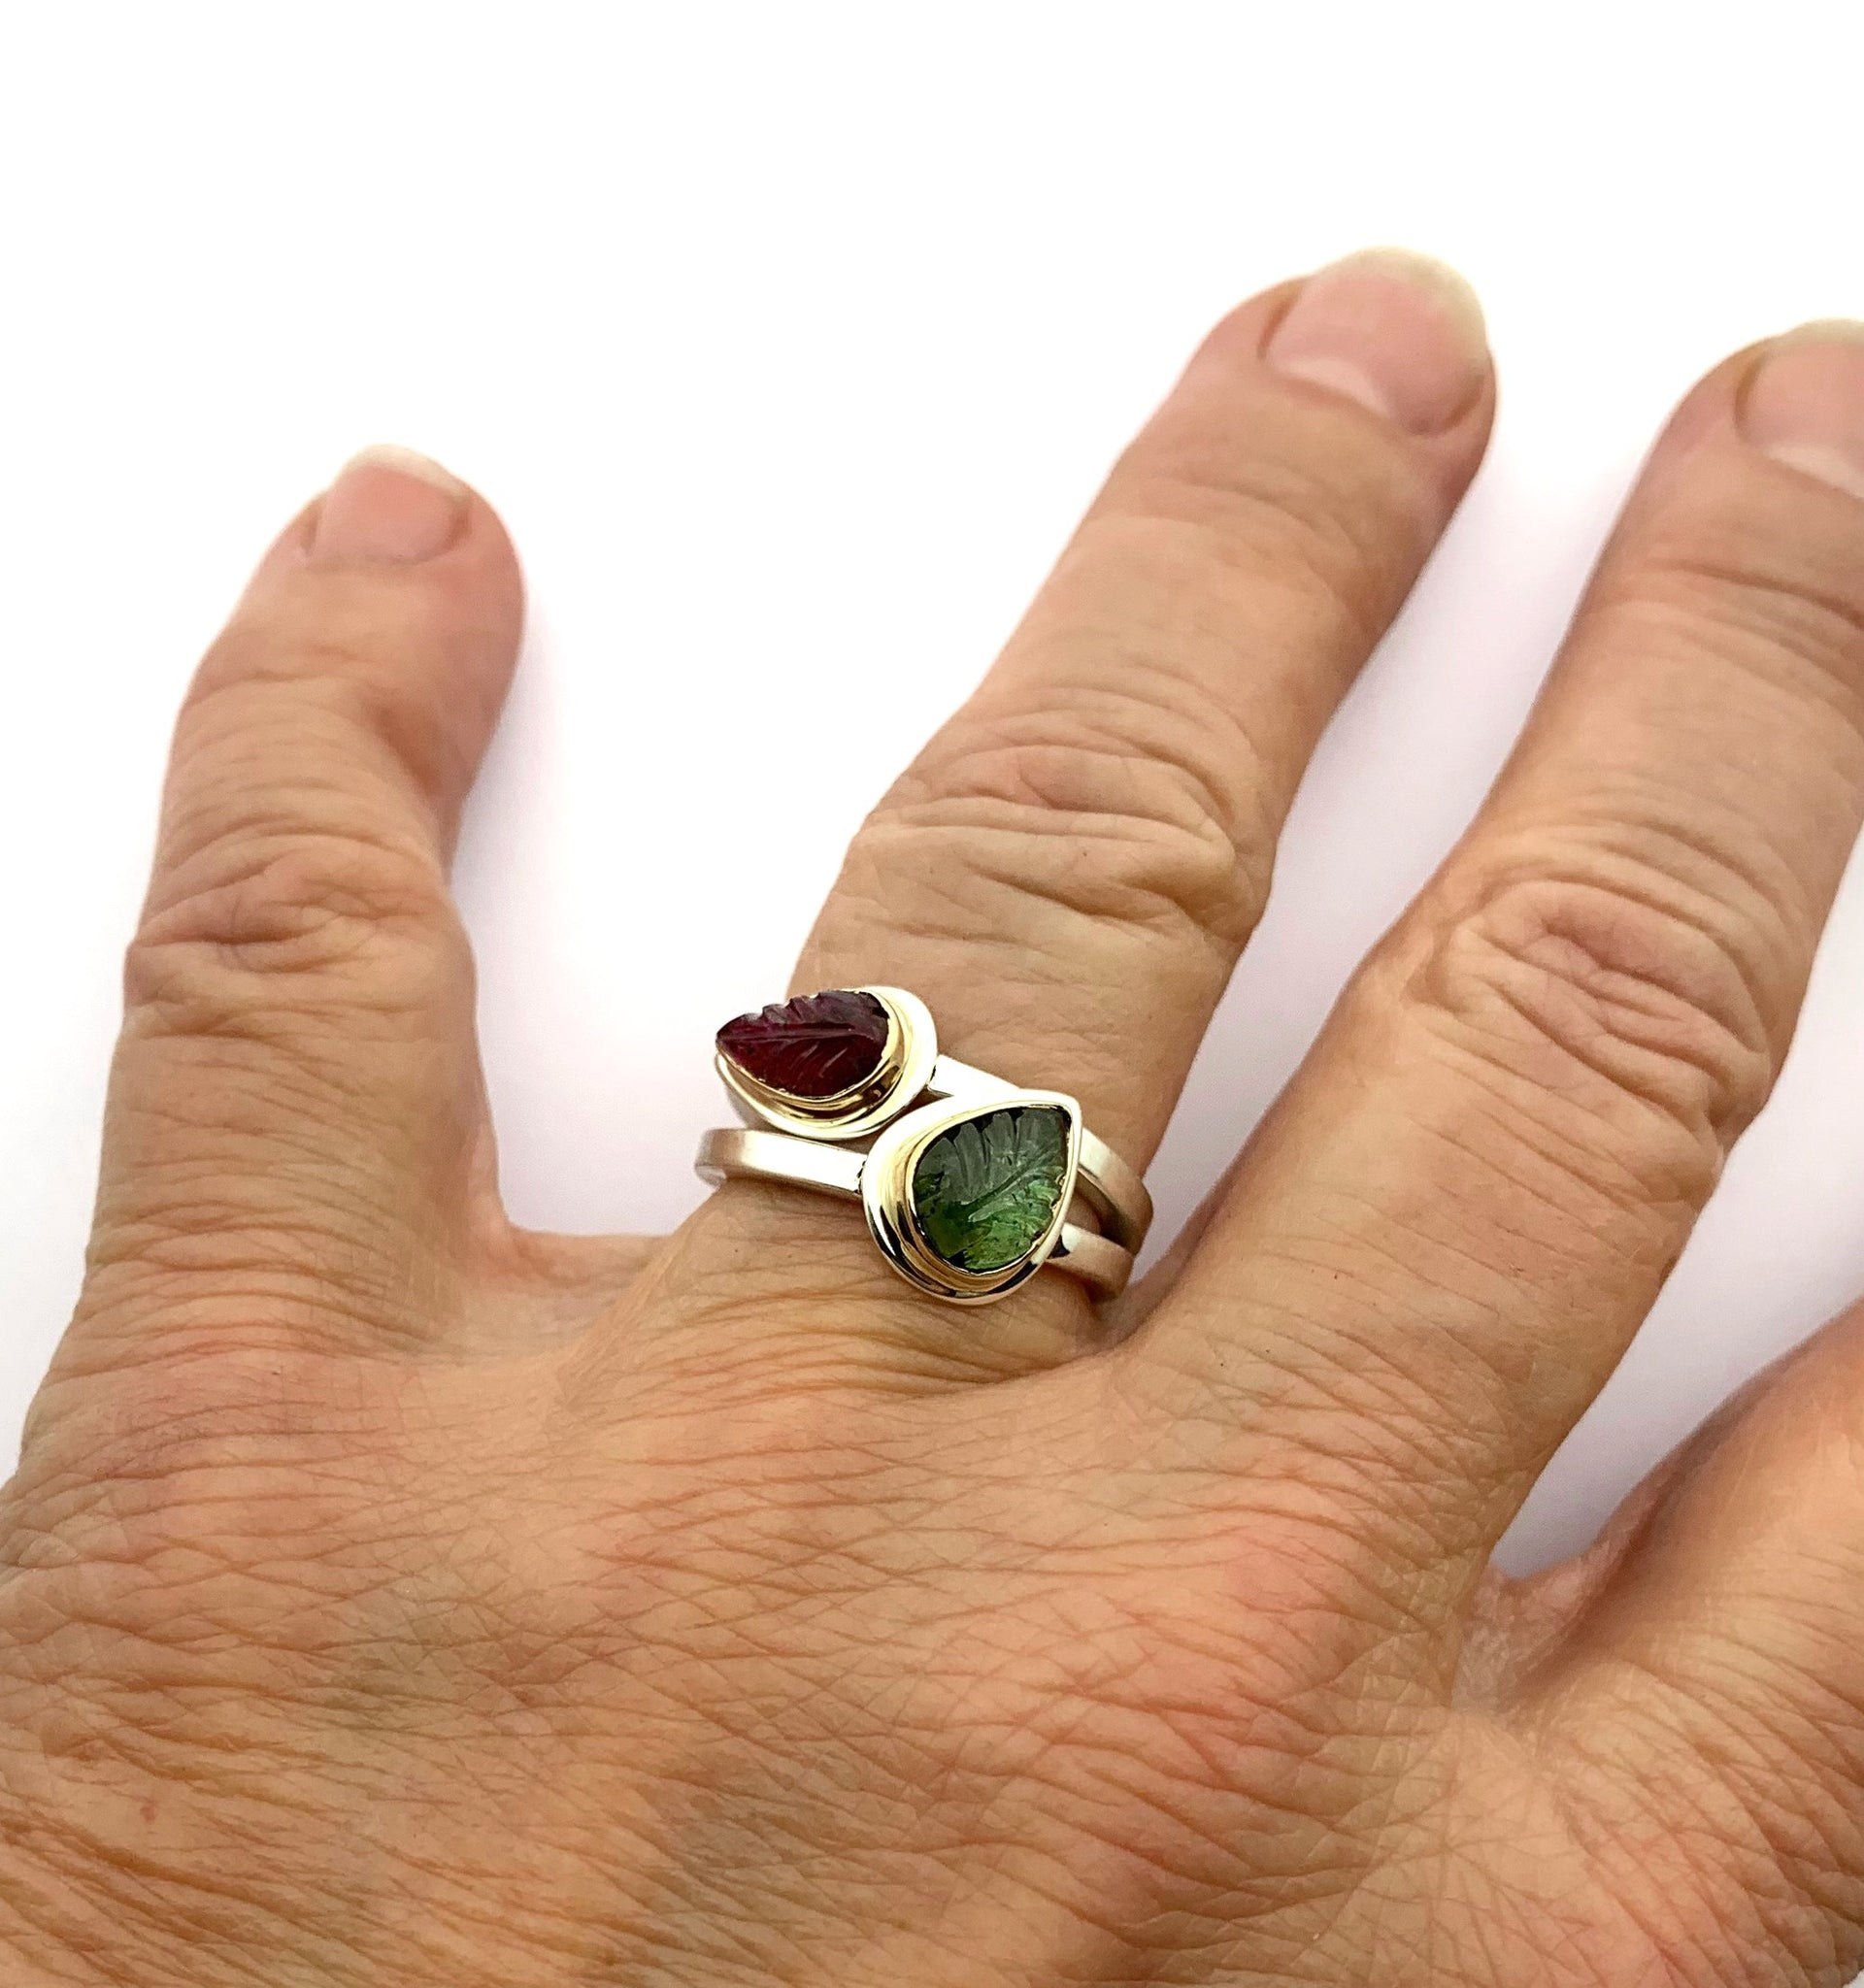 Tourmaline Leaf Rings, Stacking Rings with 14k Bezels, Silver and Gold Stone Rings